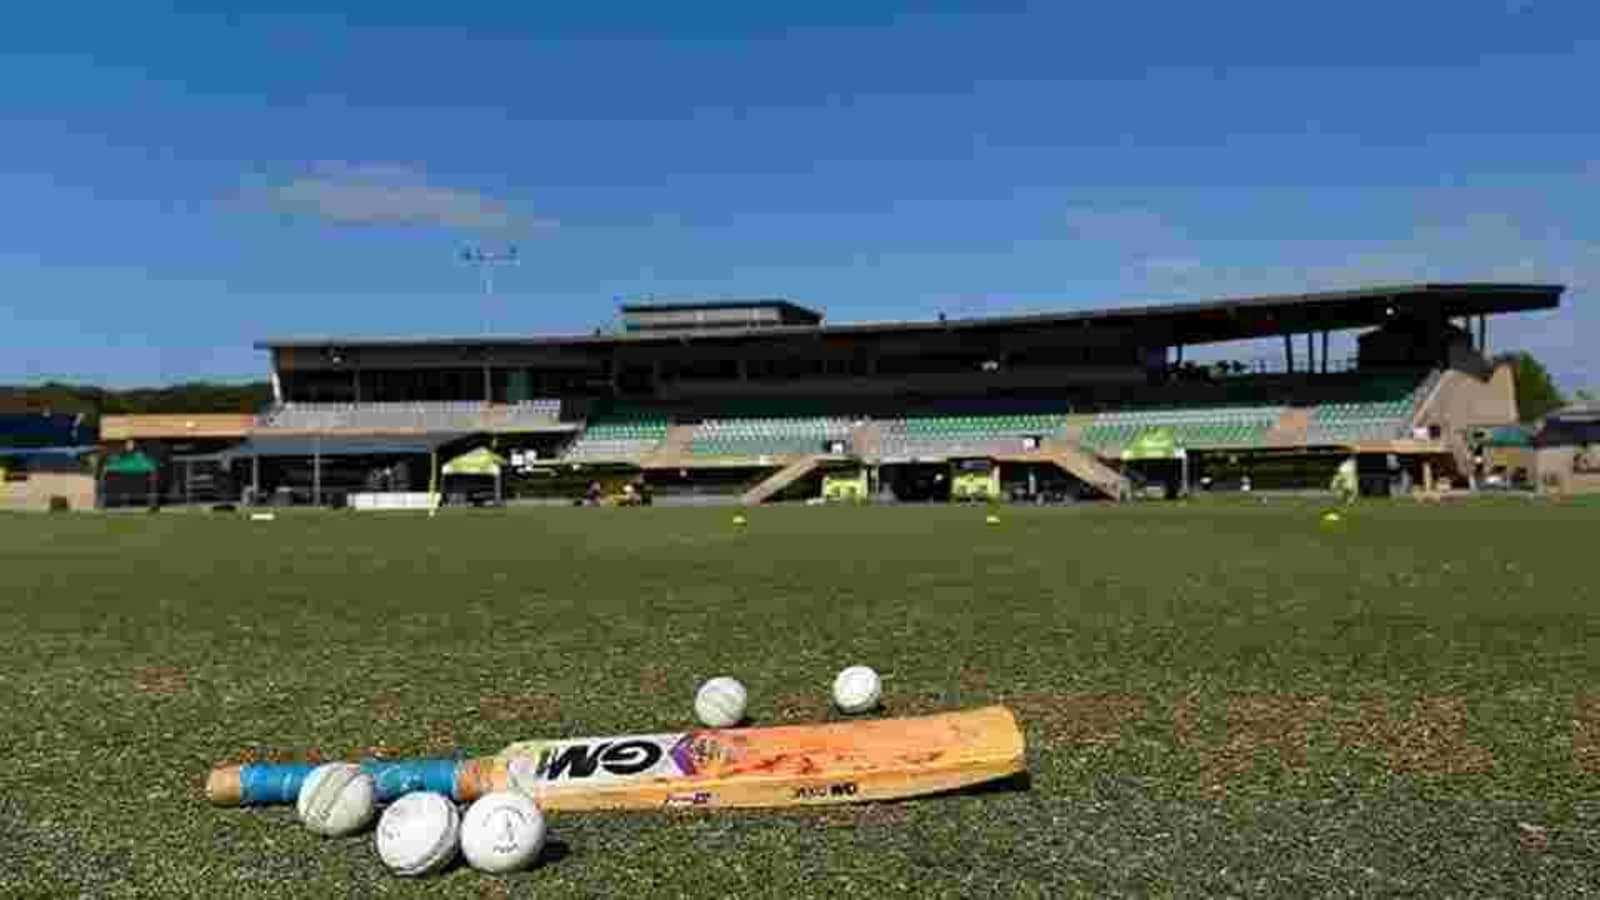 BCA conducts auction for unsanctioned T20 league before getting BCCI's approval - Hindustan Times